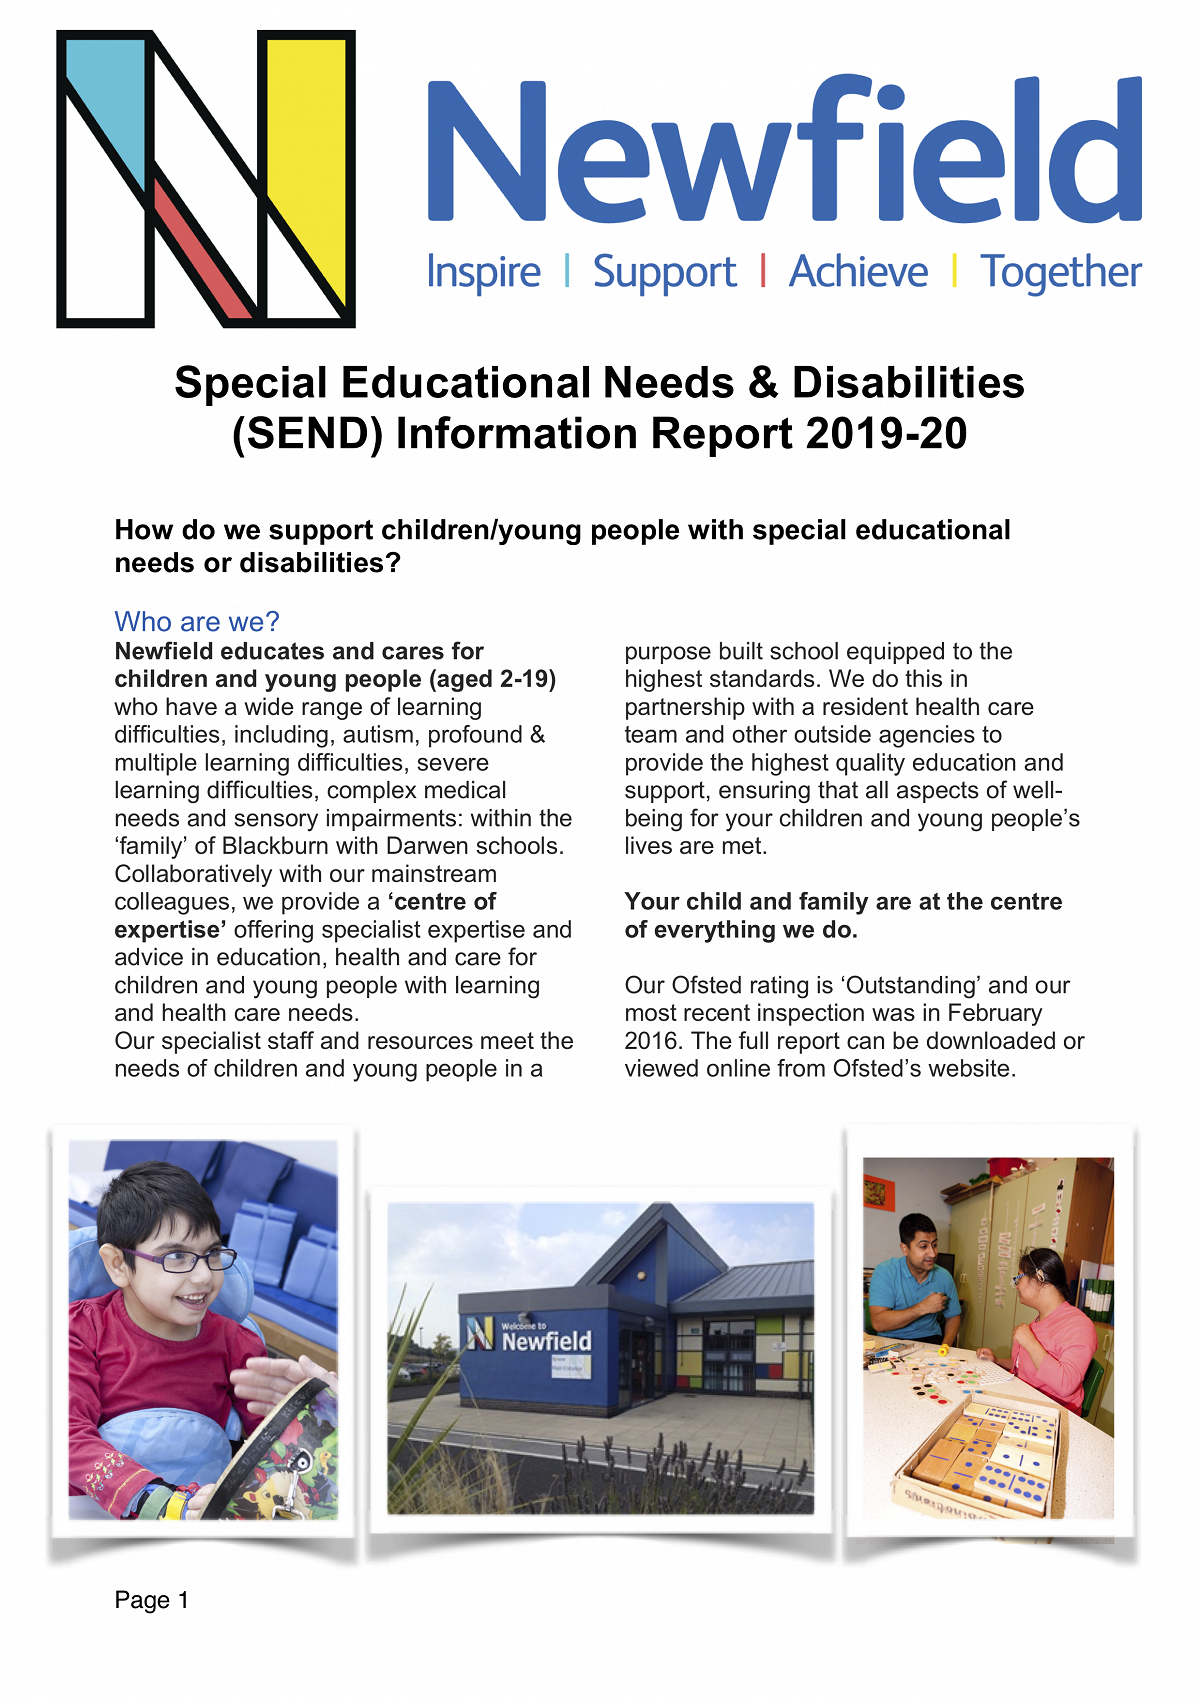 Newfield SEND Information Report 2018-19